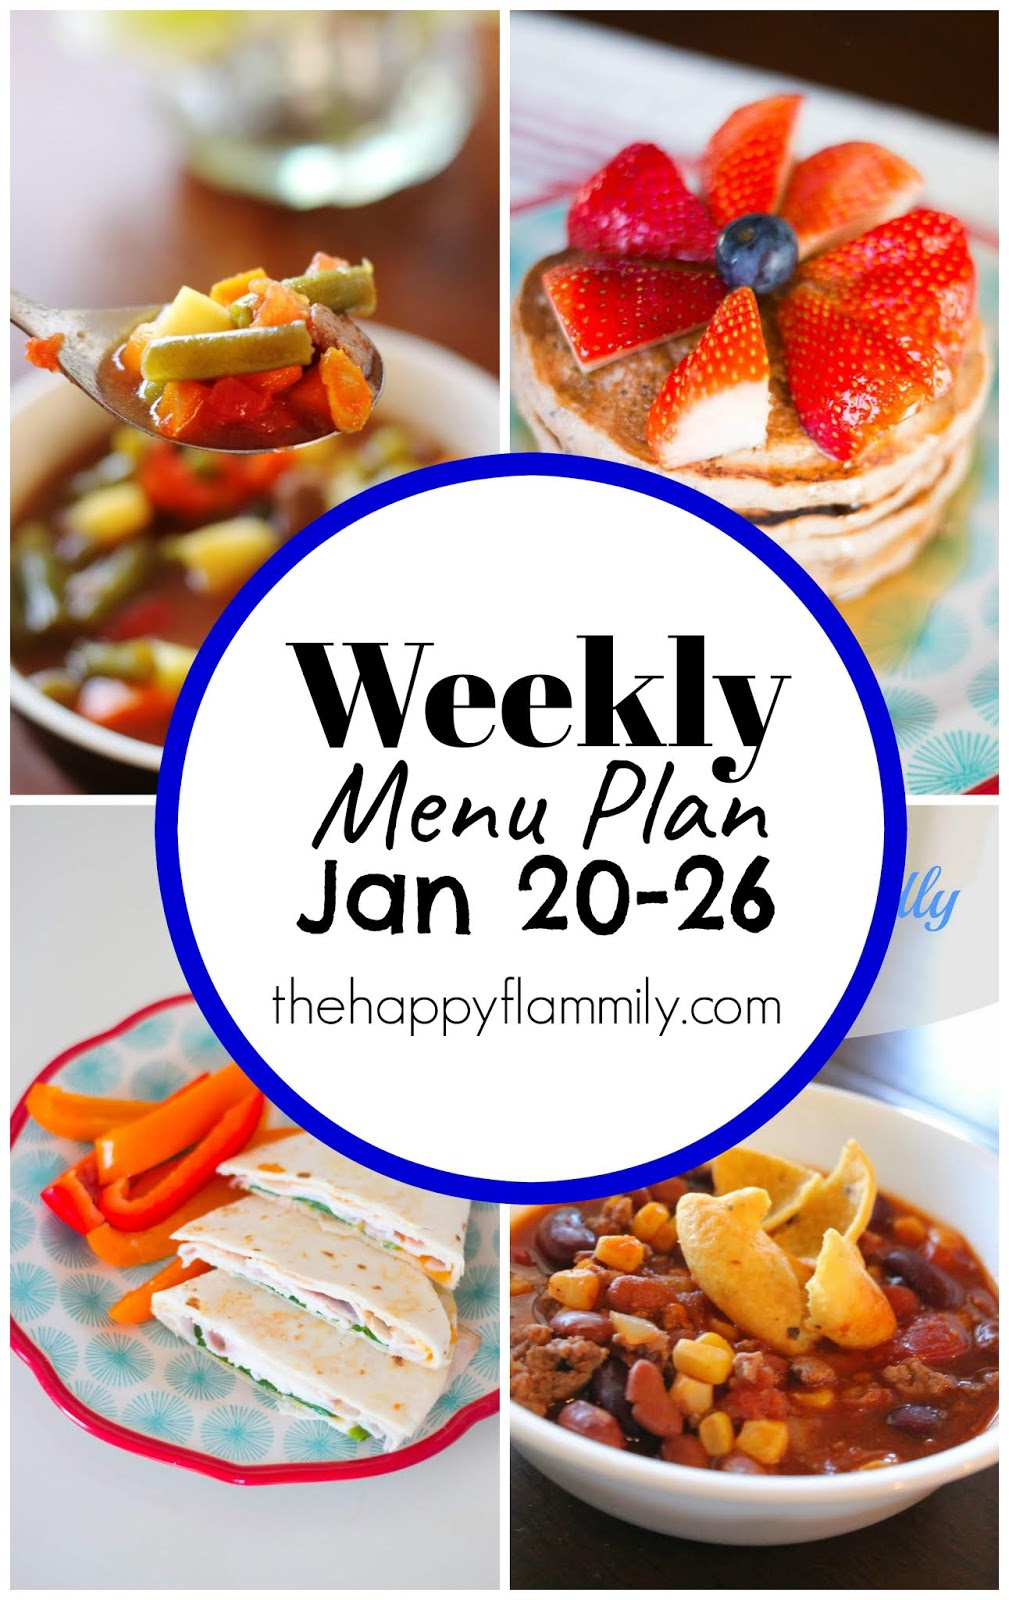 Family meal planning on a budget. Free family meal plans. Family meal planning calendar. Family meal planner template. Healthy family meal planning. Sample family meal plan. Family meal planning app. Weekly meal plan.